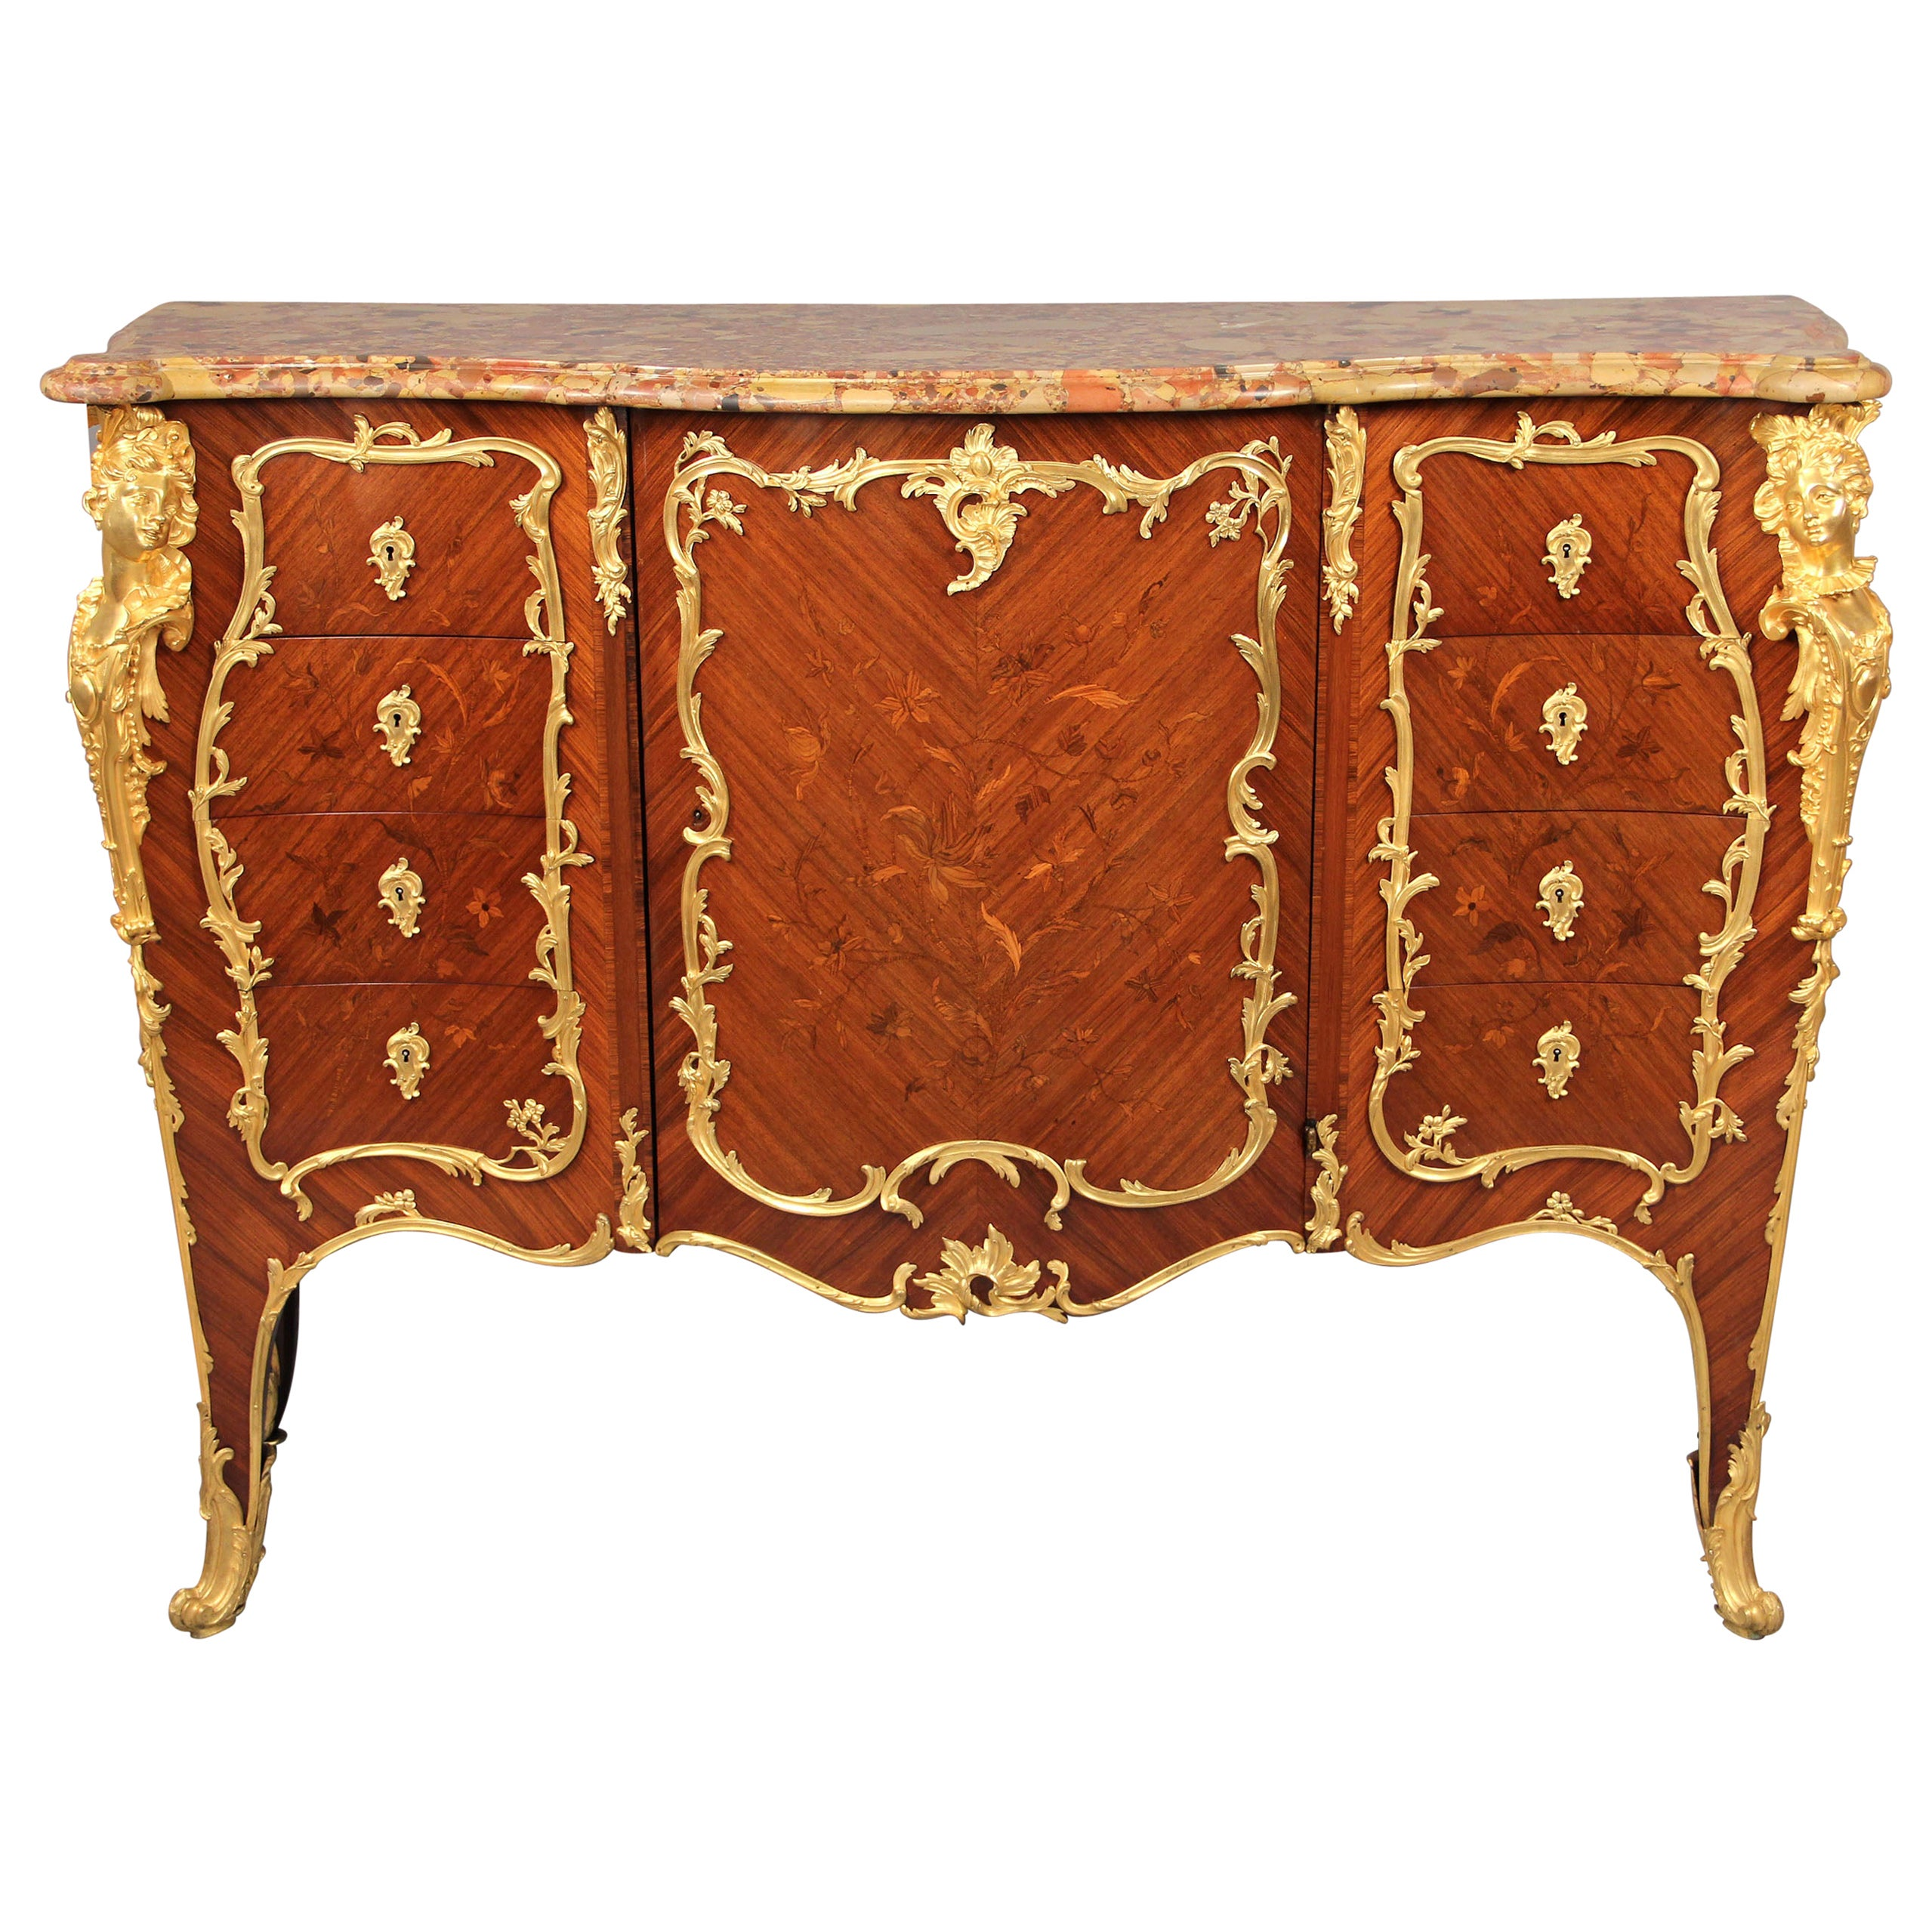 Stunning Late 19th Century Gilt Bronze Mounted Marquetry Cabinet -François Linke